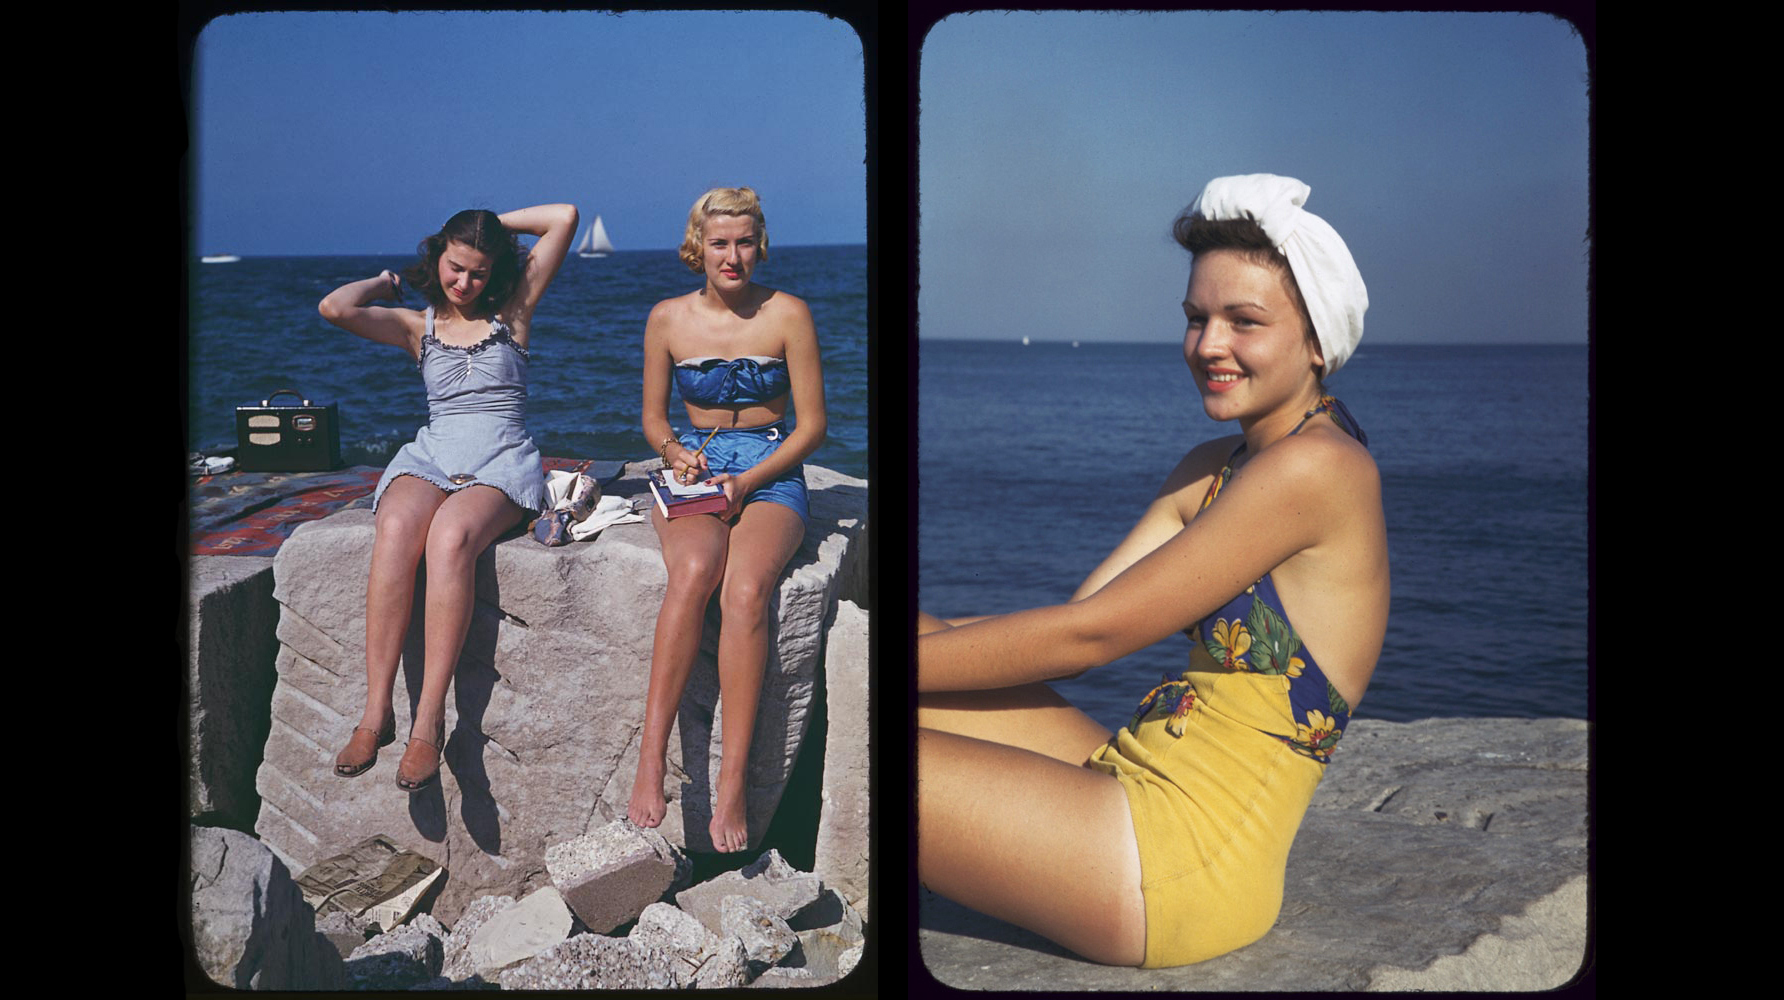 (Left) Two women relax with a radio and book at Promontory Point, July 30, 1941. (Right) Mary on Promontory Point, Sept 1944 (Right)